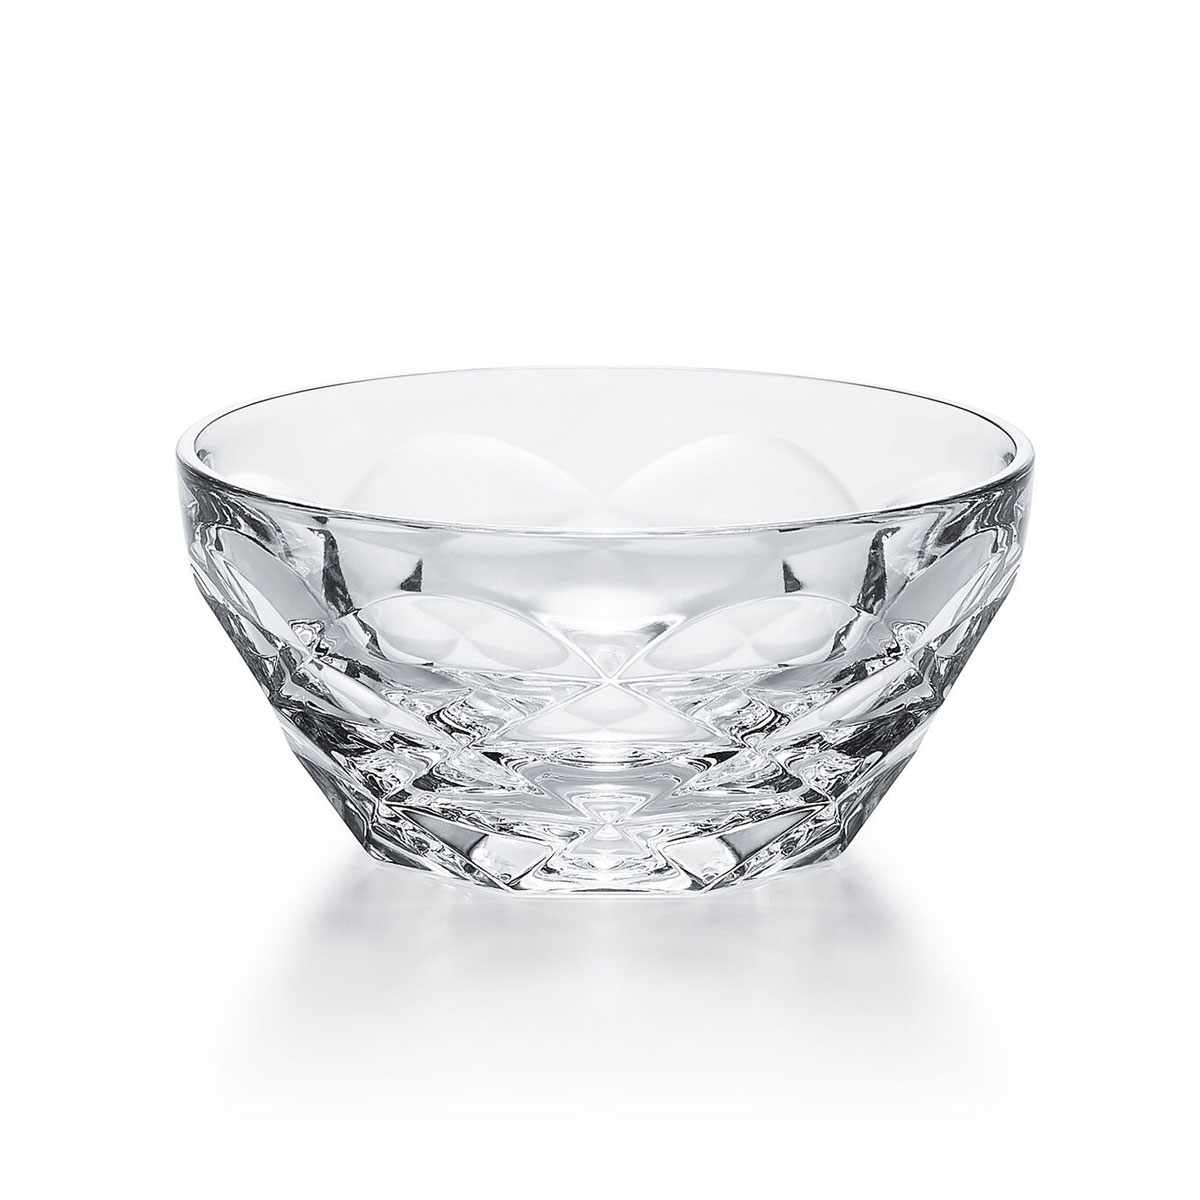 "Baccarat 5.5"" Swing Bowl"